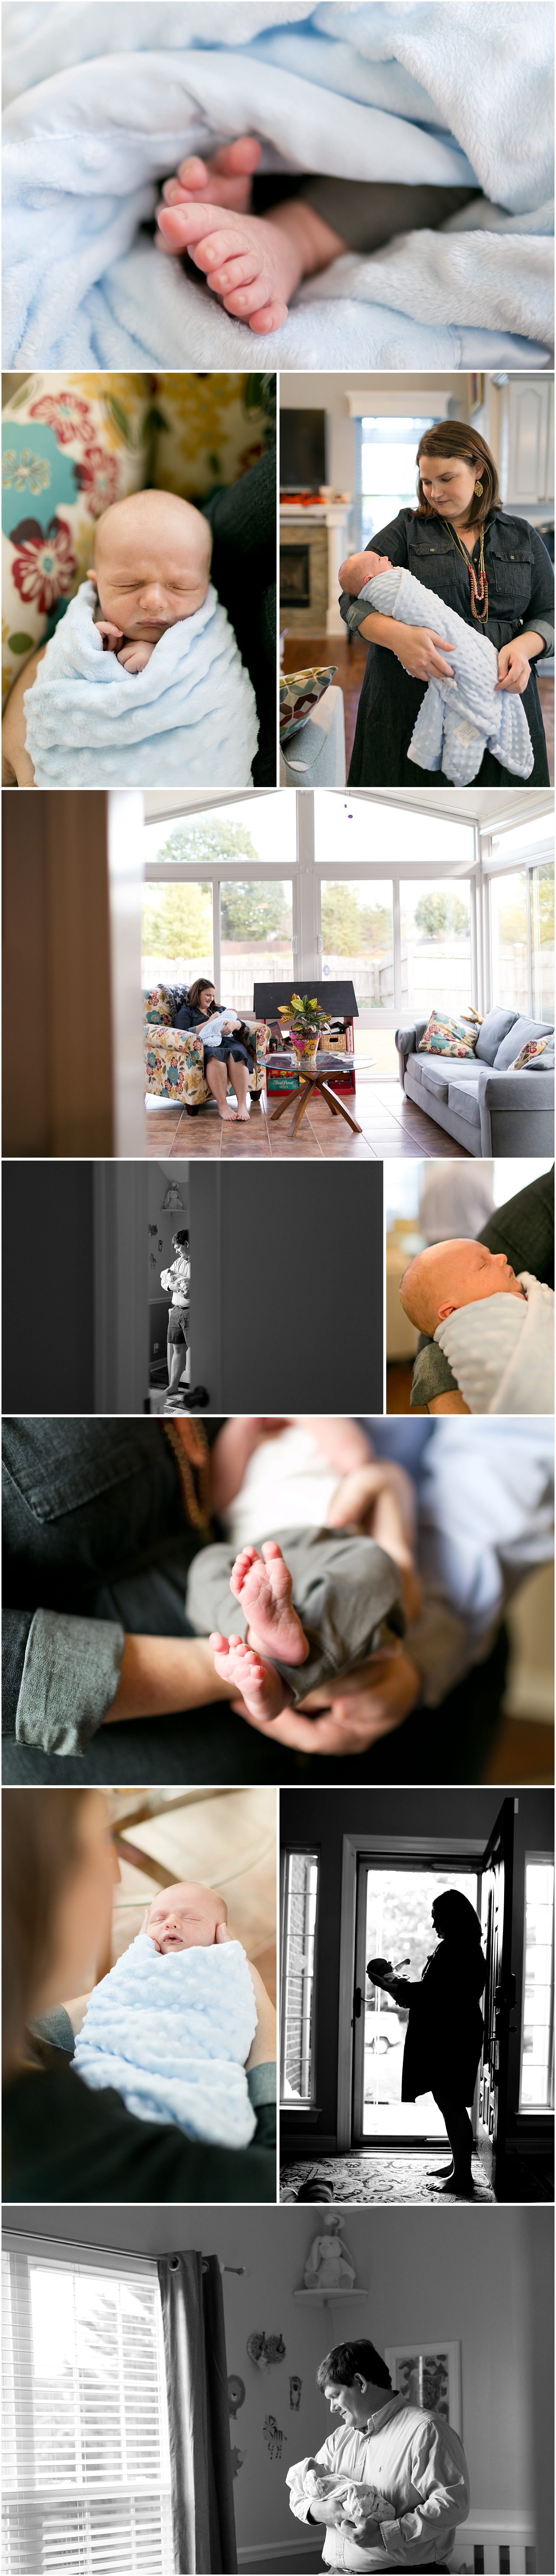 lifestyle newborn photography - in home session with baby boy